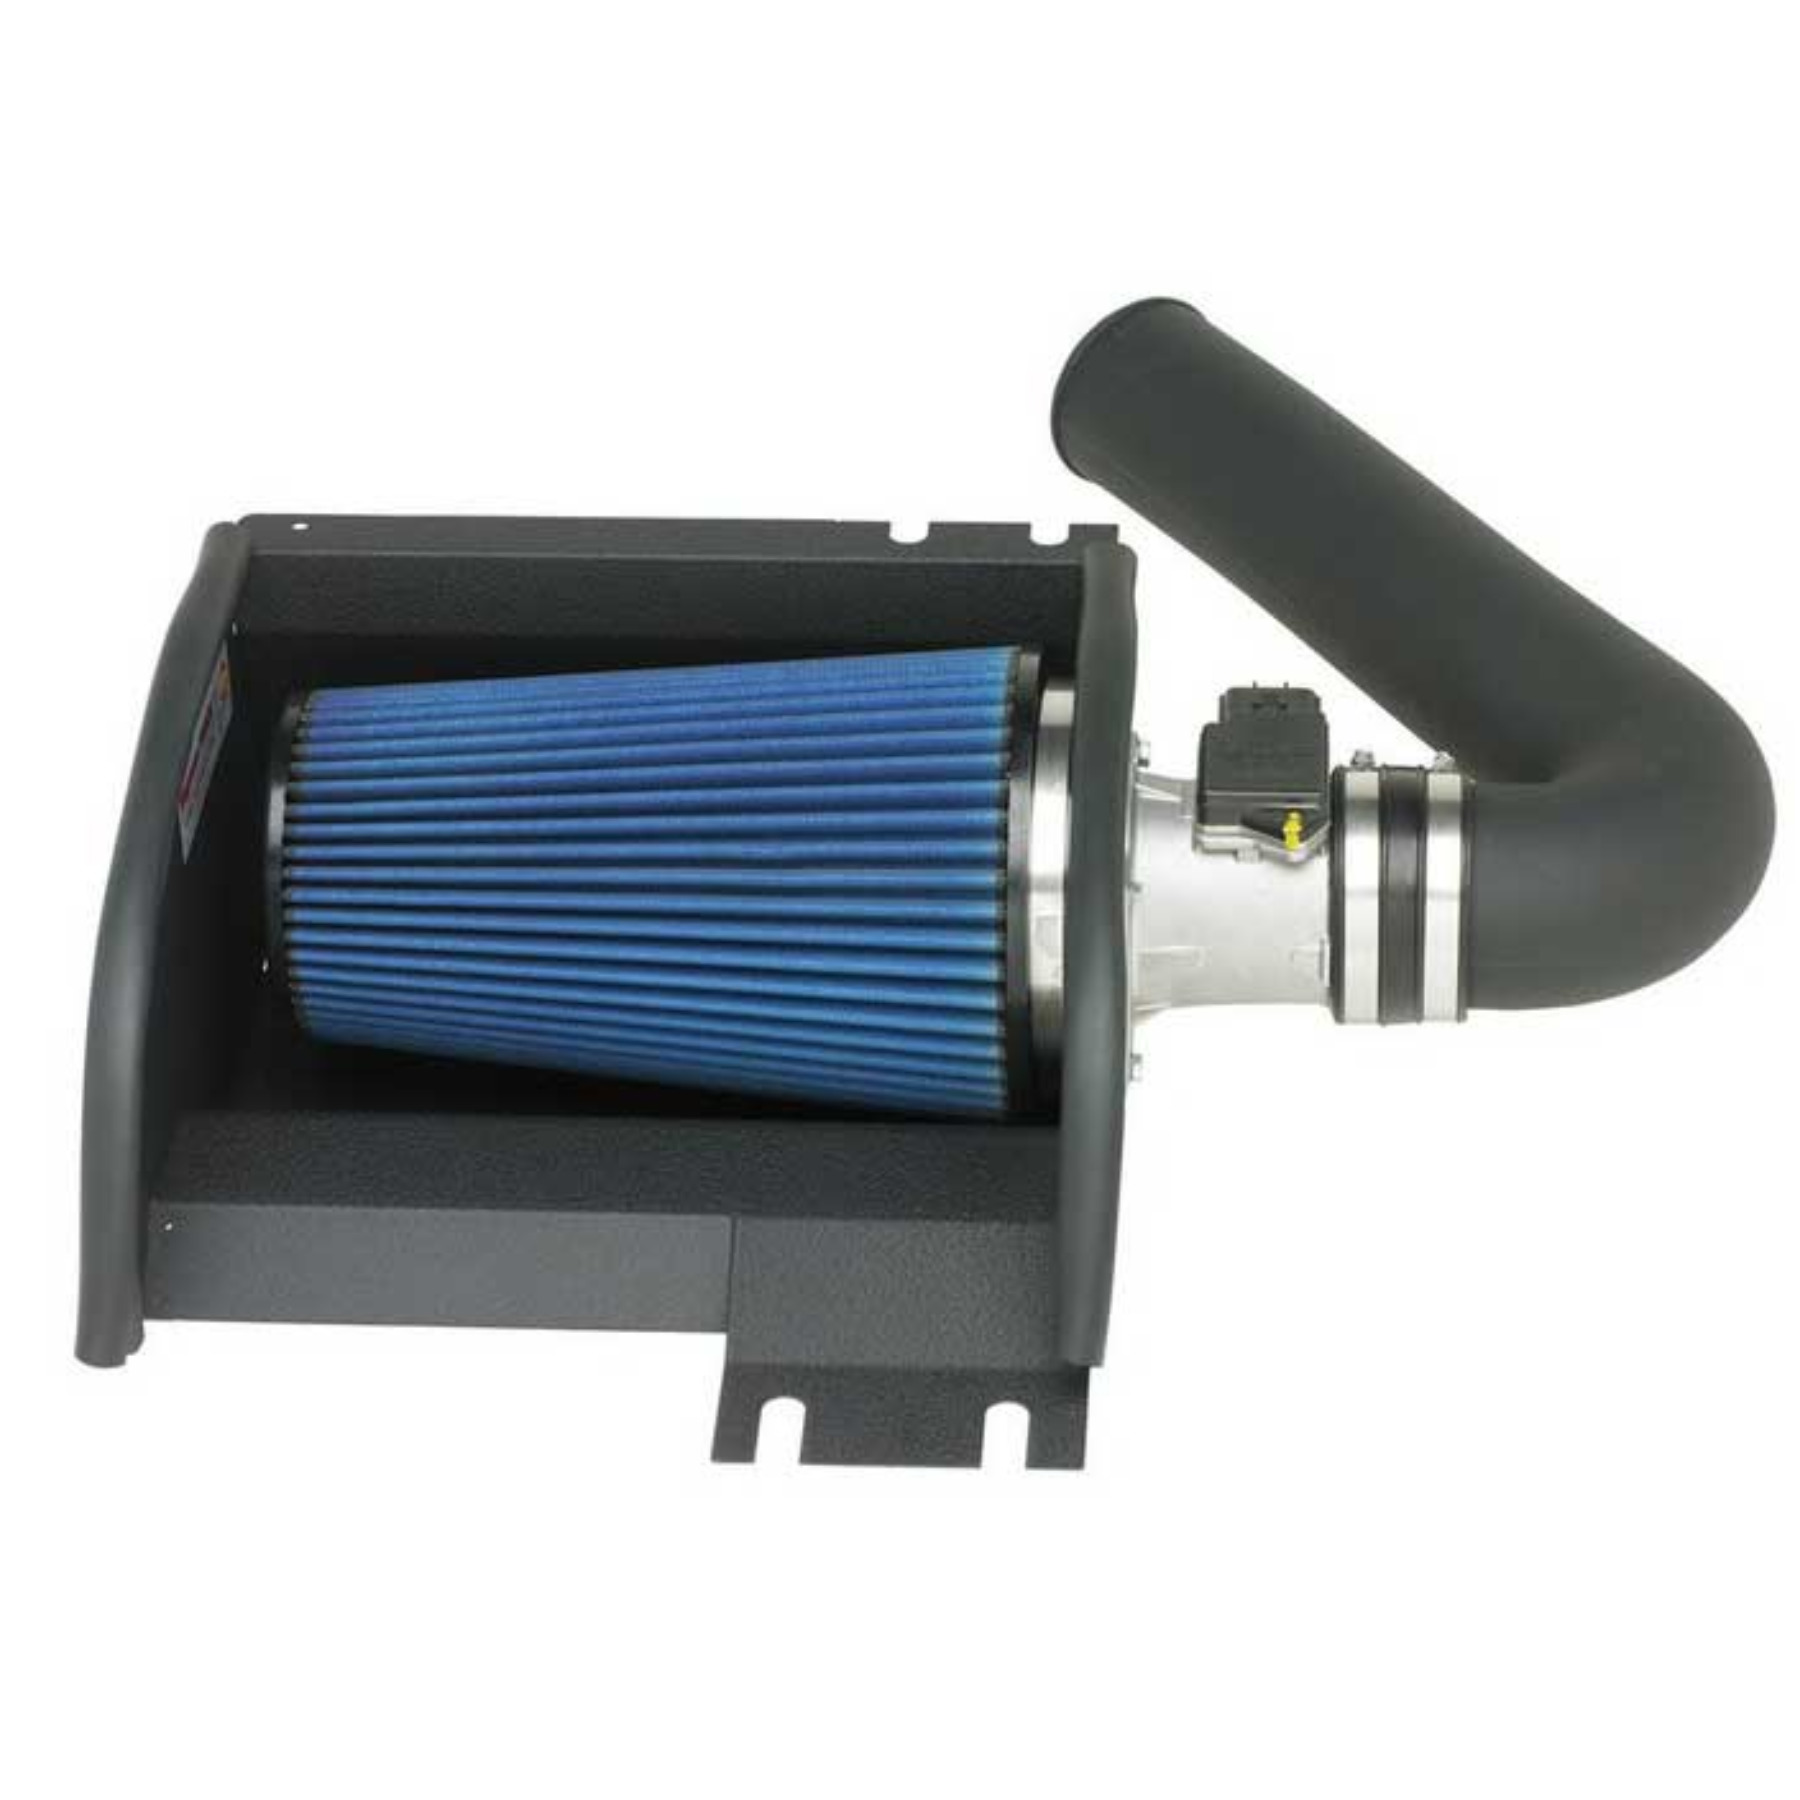 Afe Power Cold Air Intake Stage 2 Pro Dry S Ford Motorhome 6.8l 1997-2007 51-10542